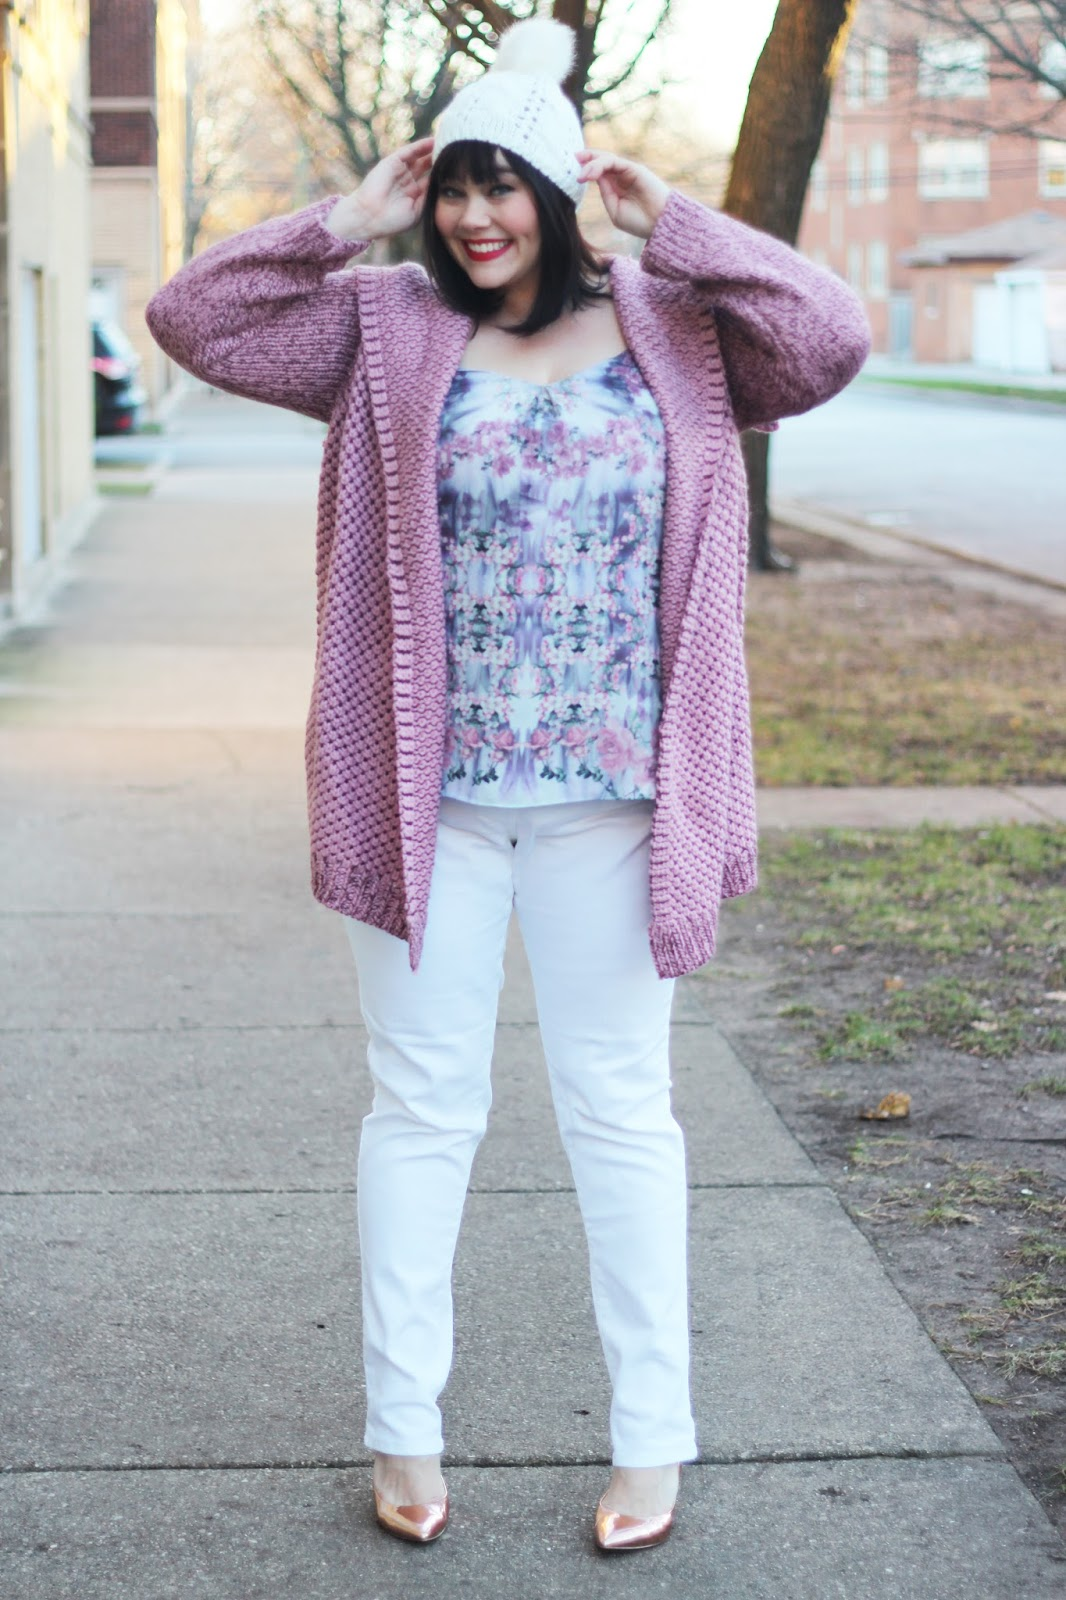 amber from style plus curves in white jeans and dusty rose cardigan from Fullbeauty.com